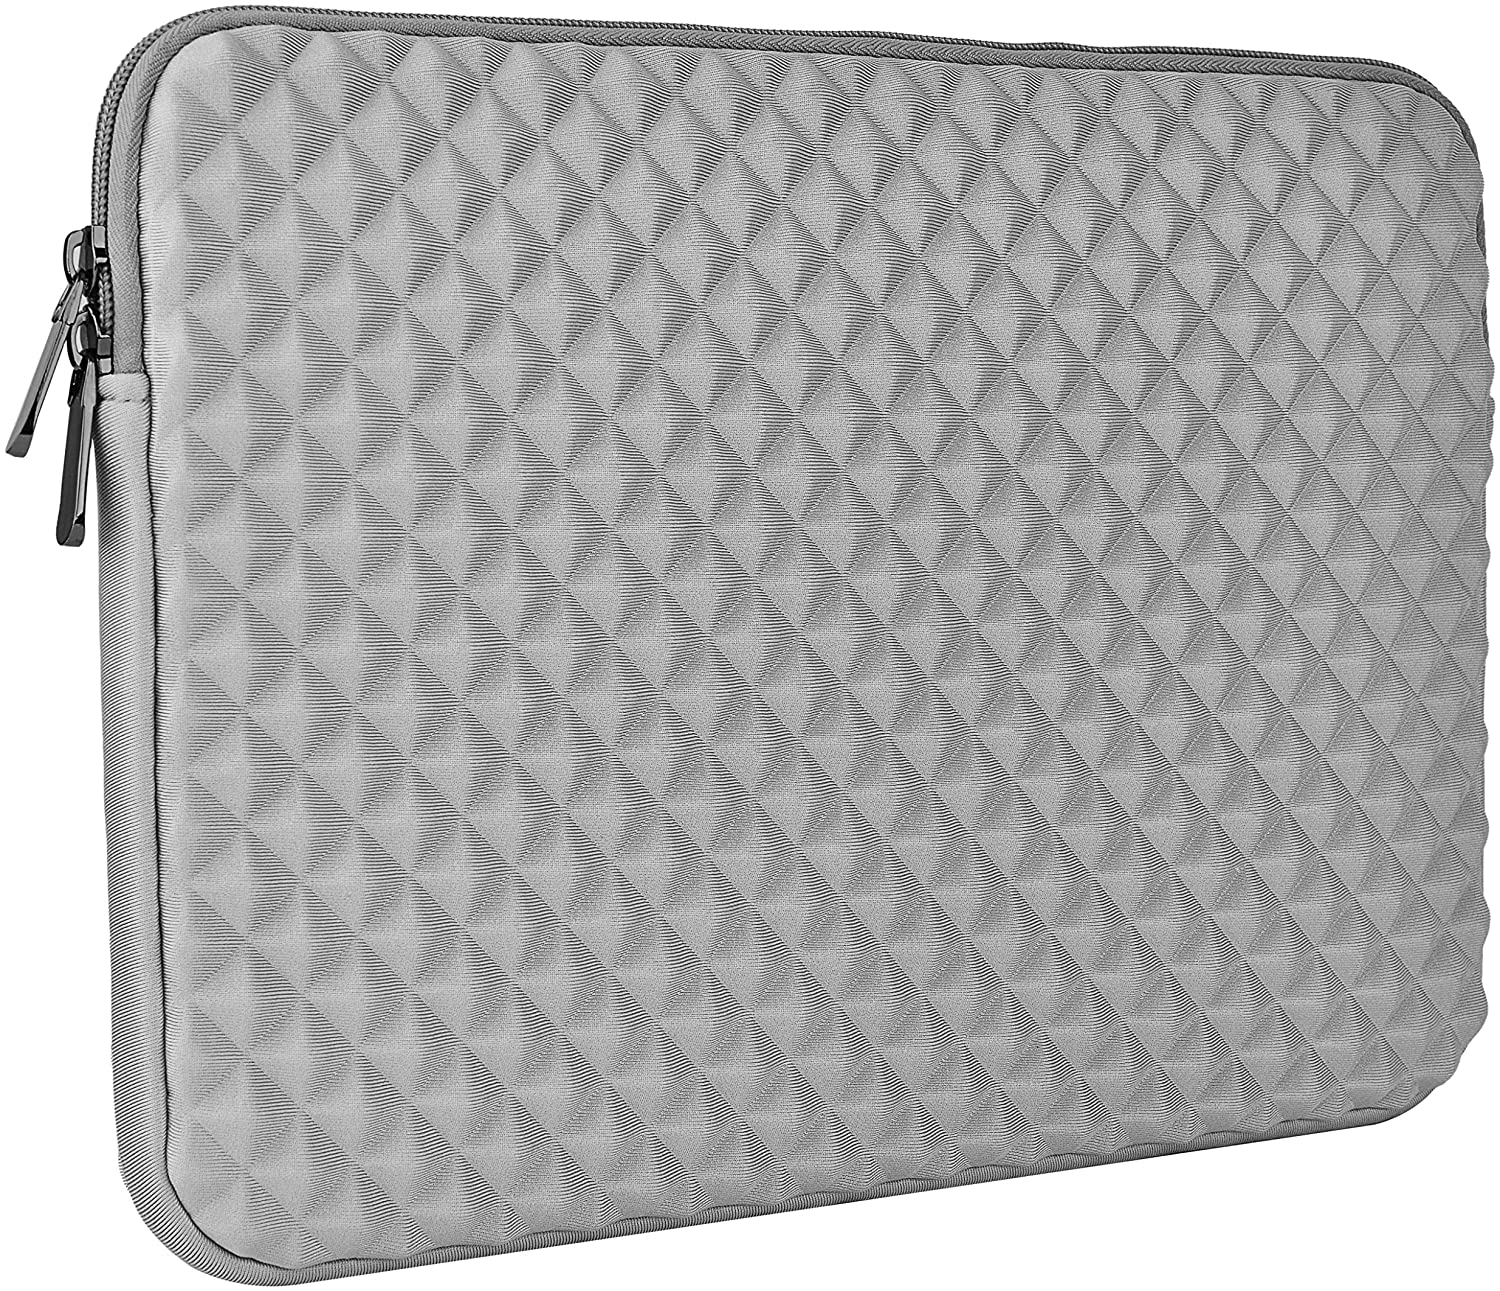 LuvCase Laptop Protective Diamond Foam Neoprene Sleeve Waterproof Case Bag Compatible MacBook Pro 15-16 Inch, A2141/A1707/A1990/A1398/A1286, Chromebook, Acer, Thinkpad HP Notebook (Grey)